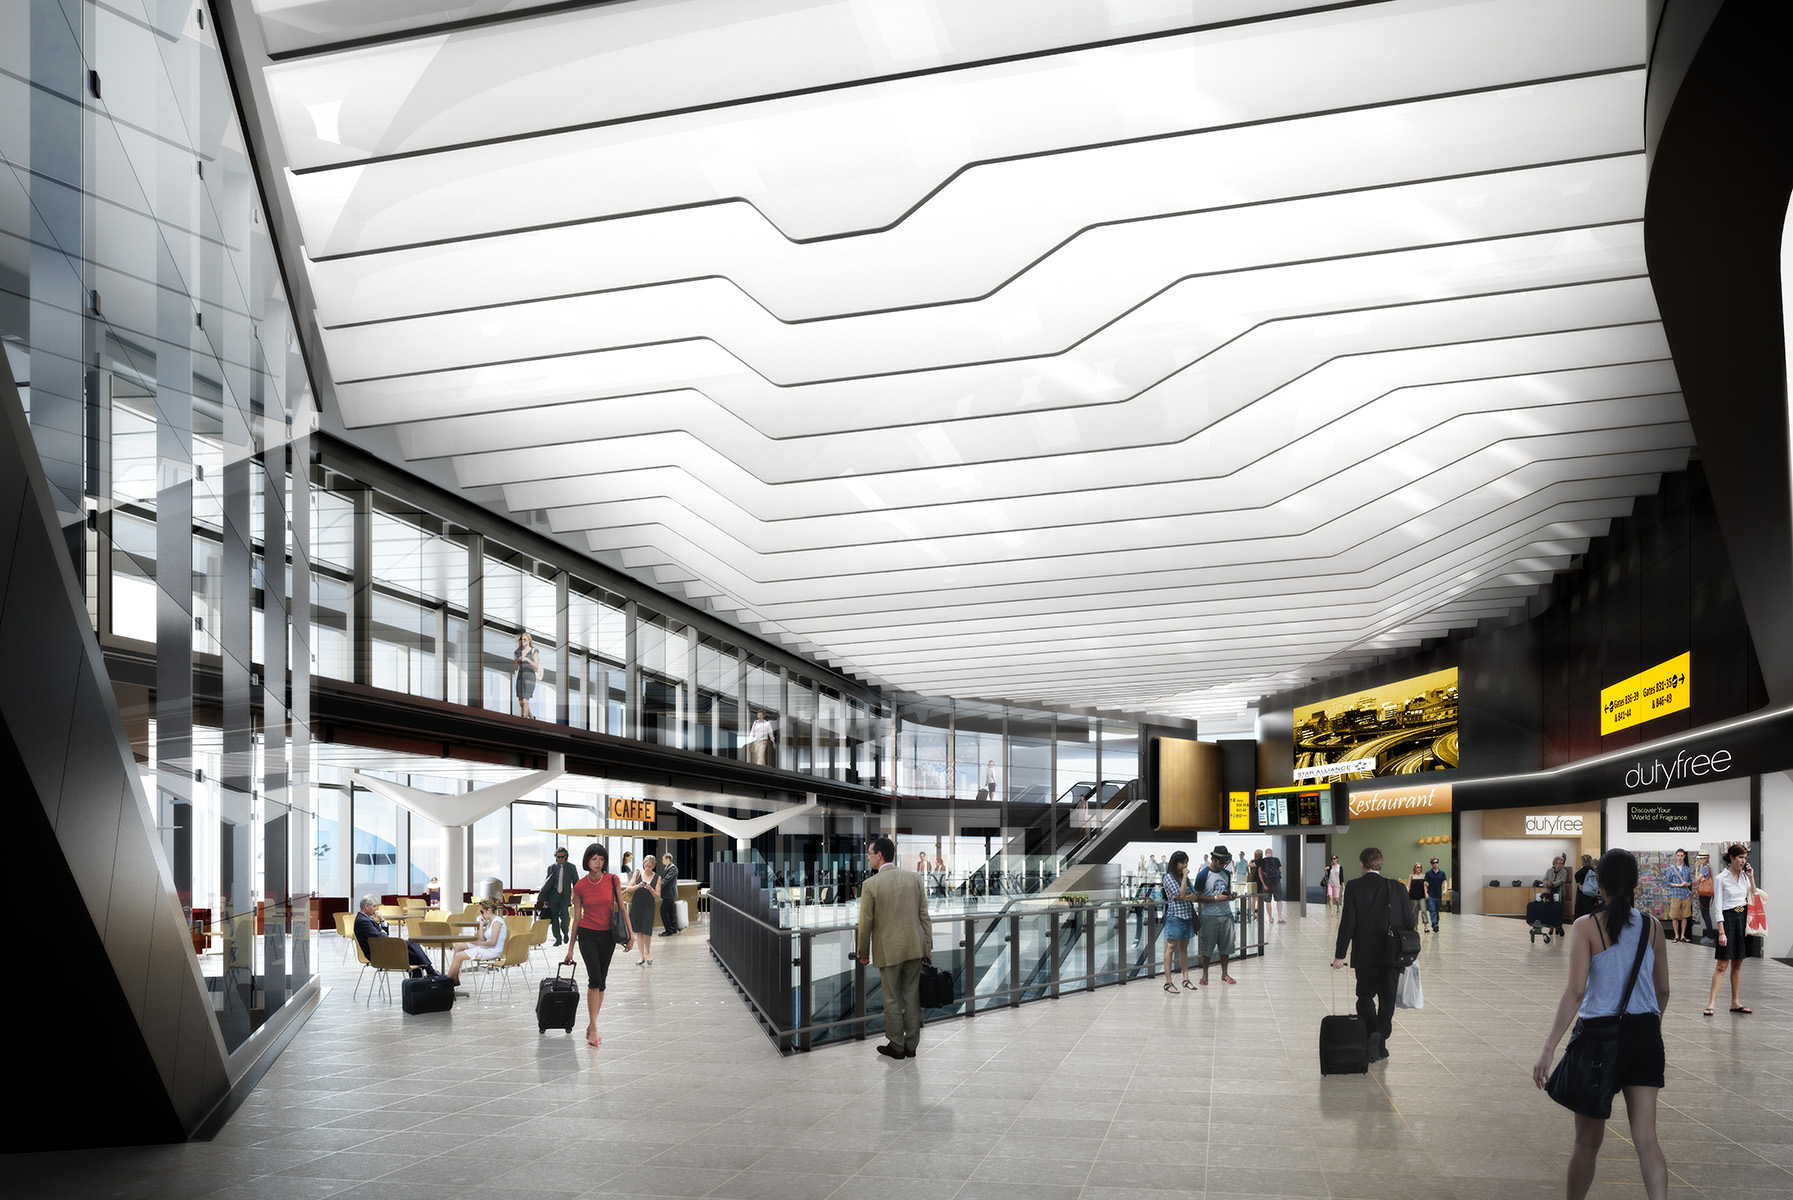 artist's impression of terminal interior